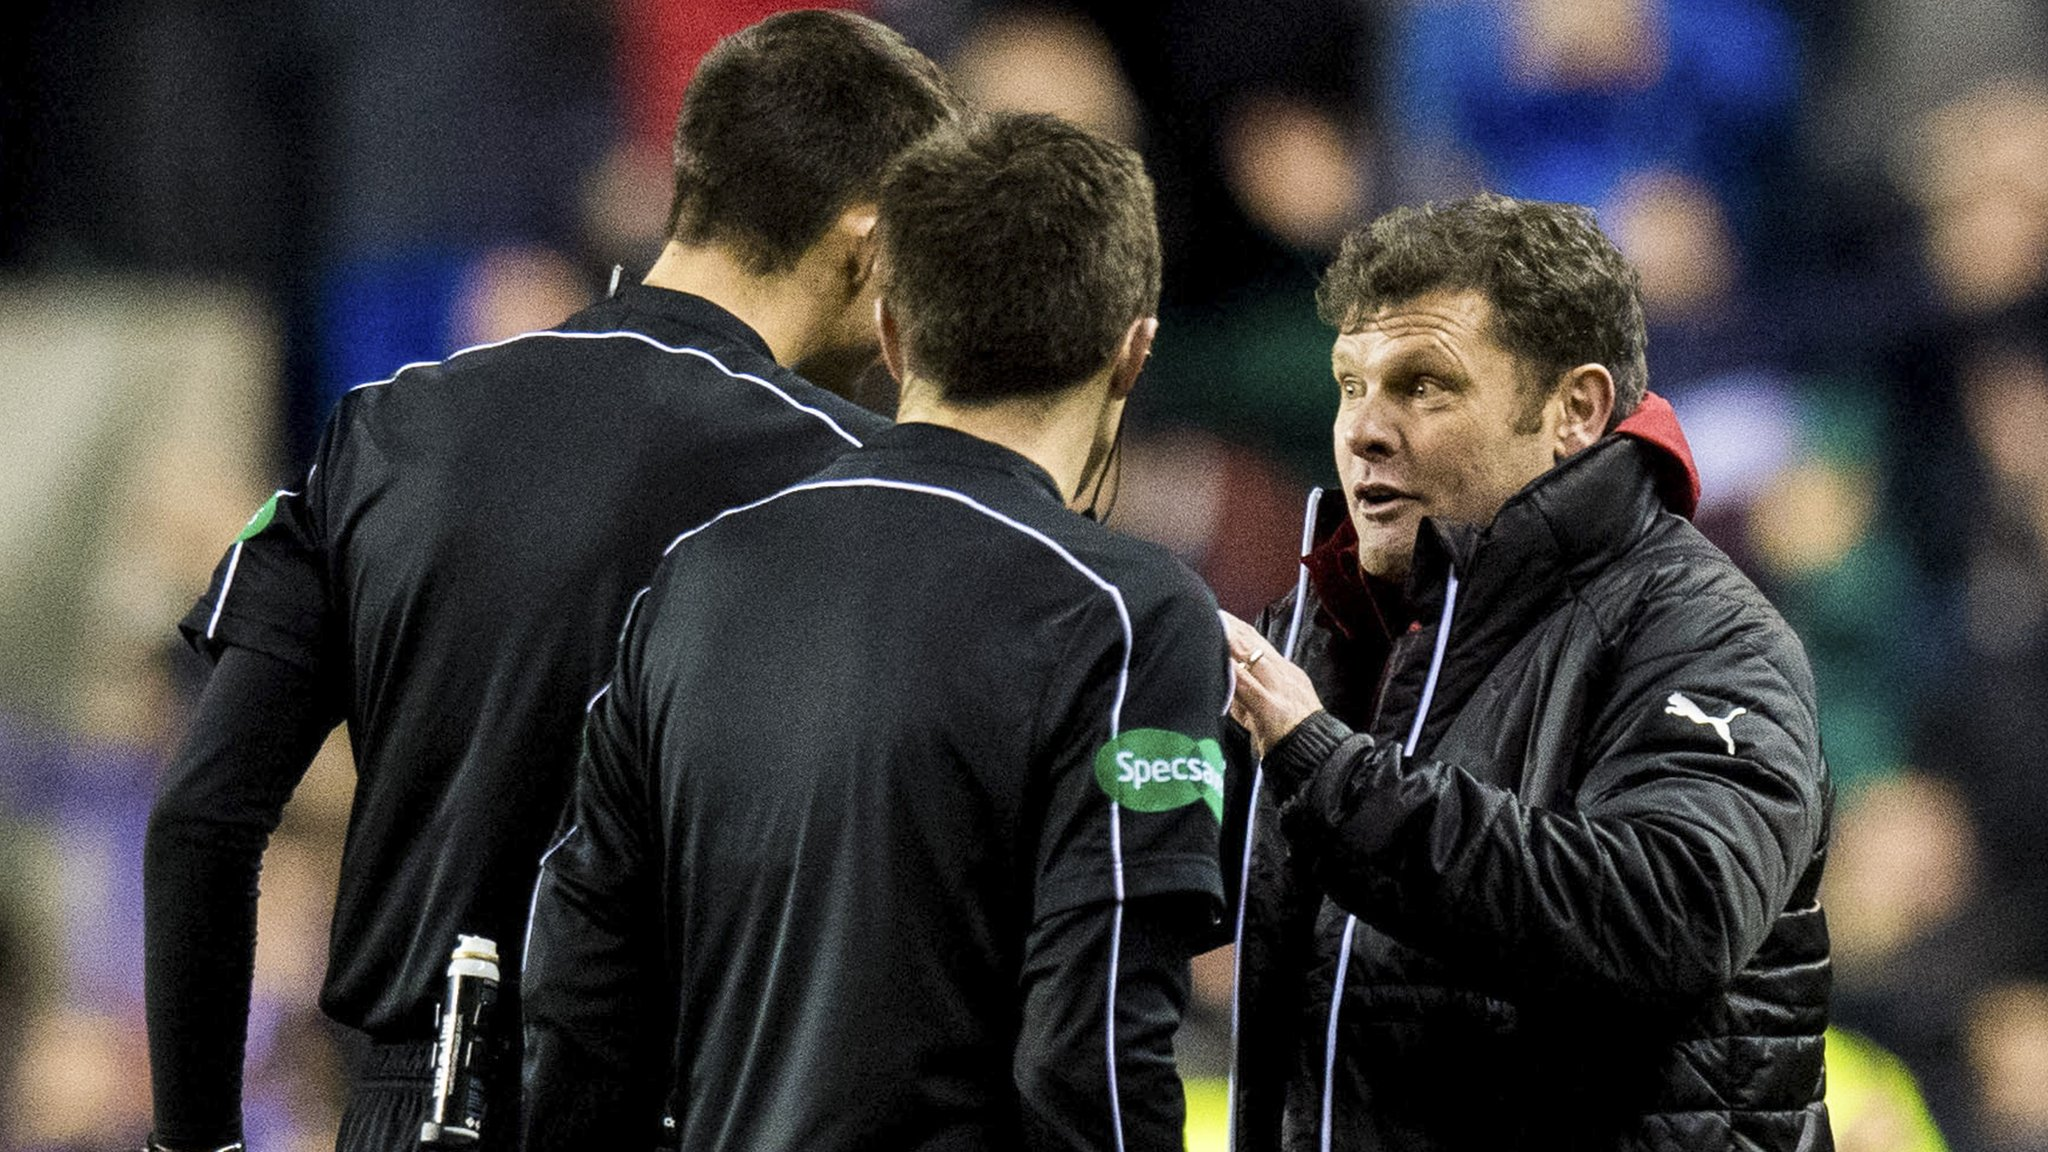 'Full-time referees could help game in Scotland'